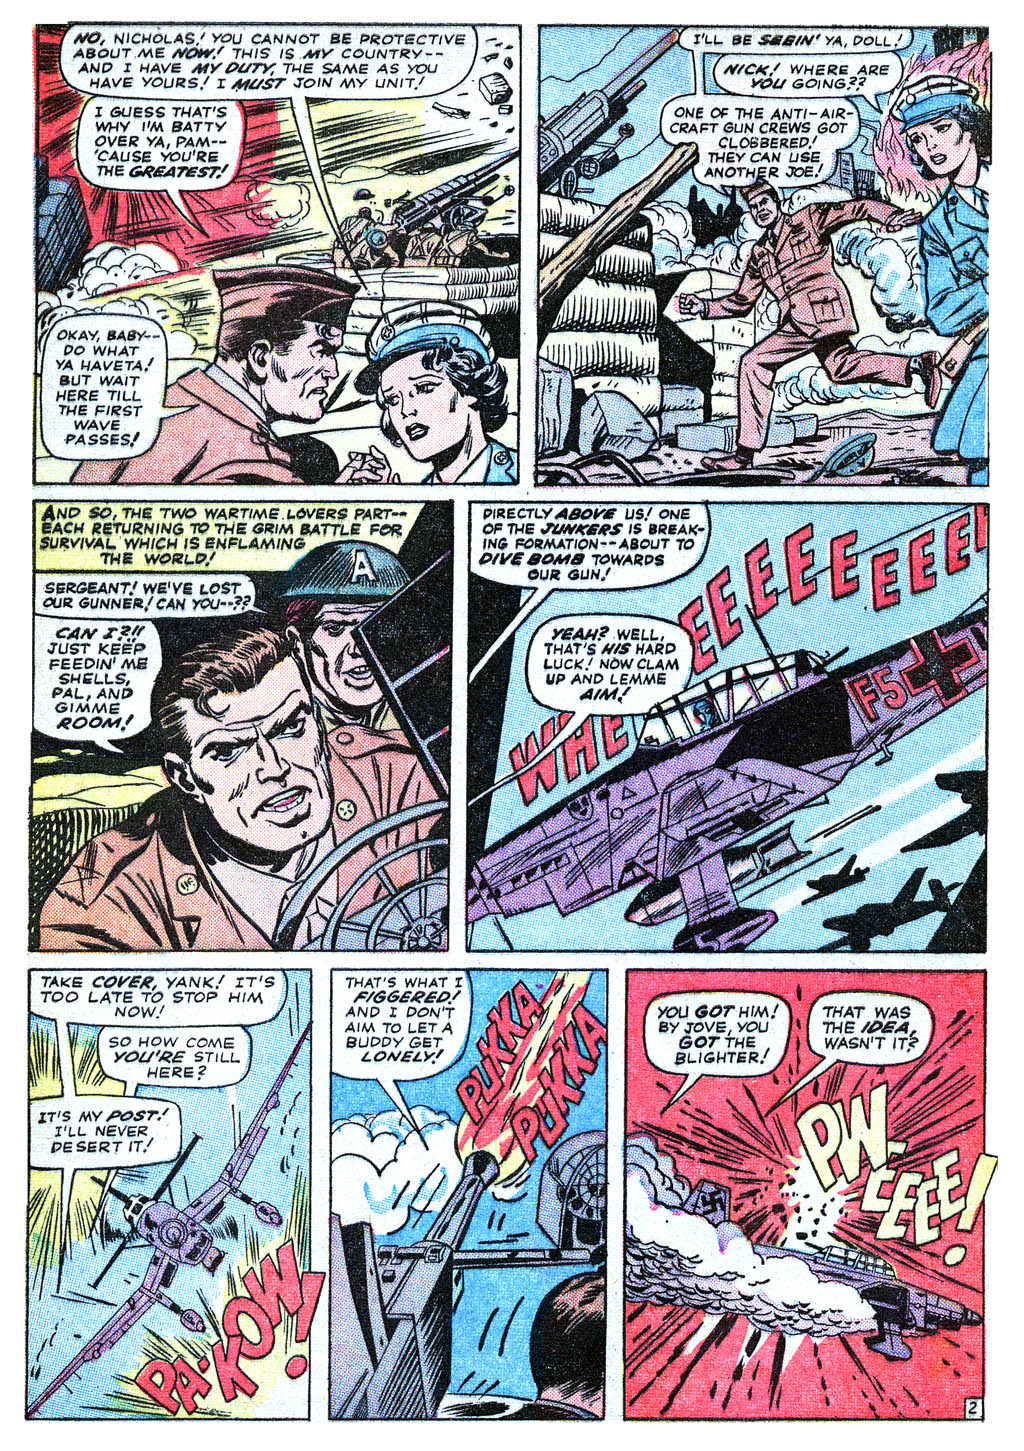 Read online Sgt. Fury comic -  Issue #18 - 4